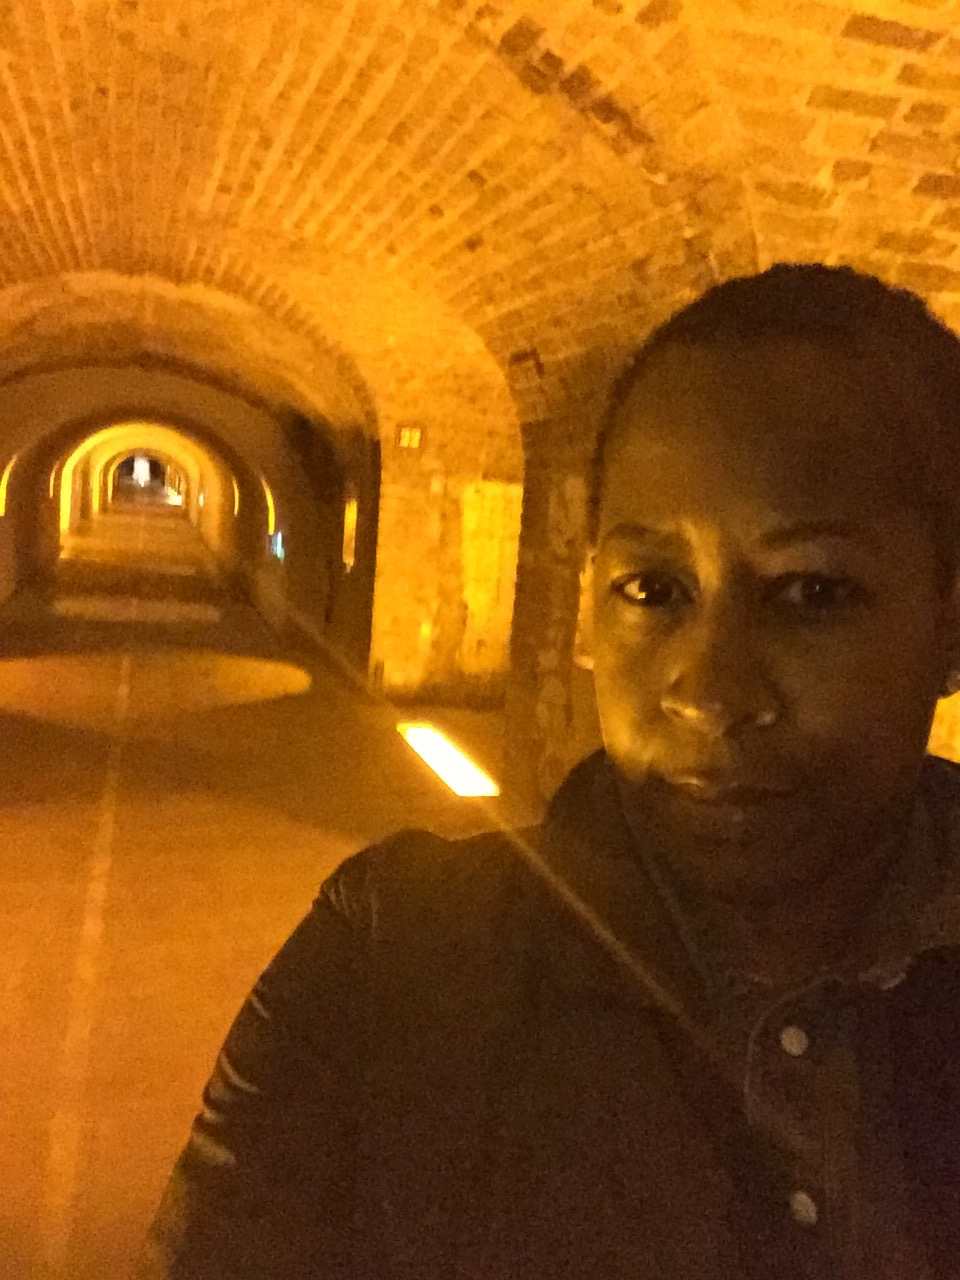 In the Moët caves